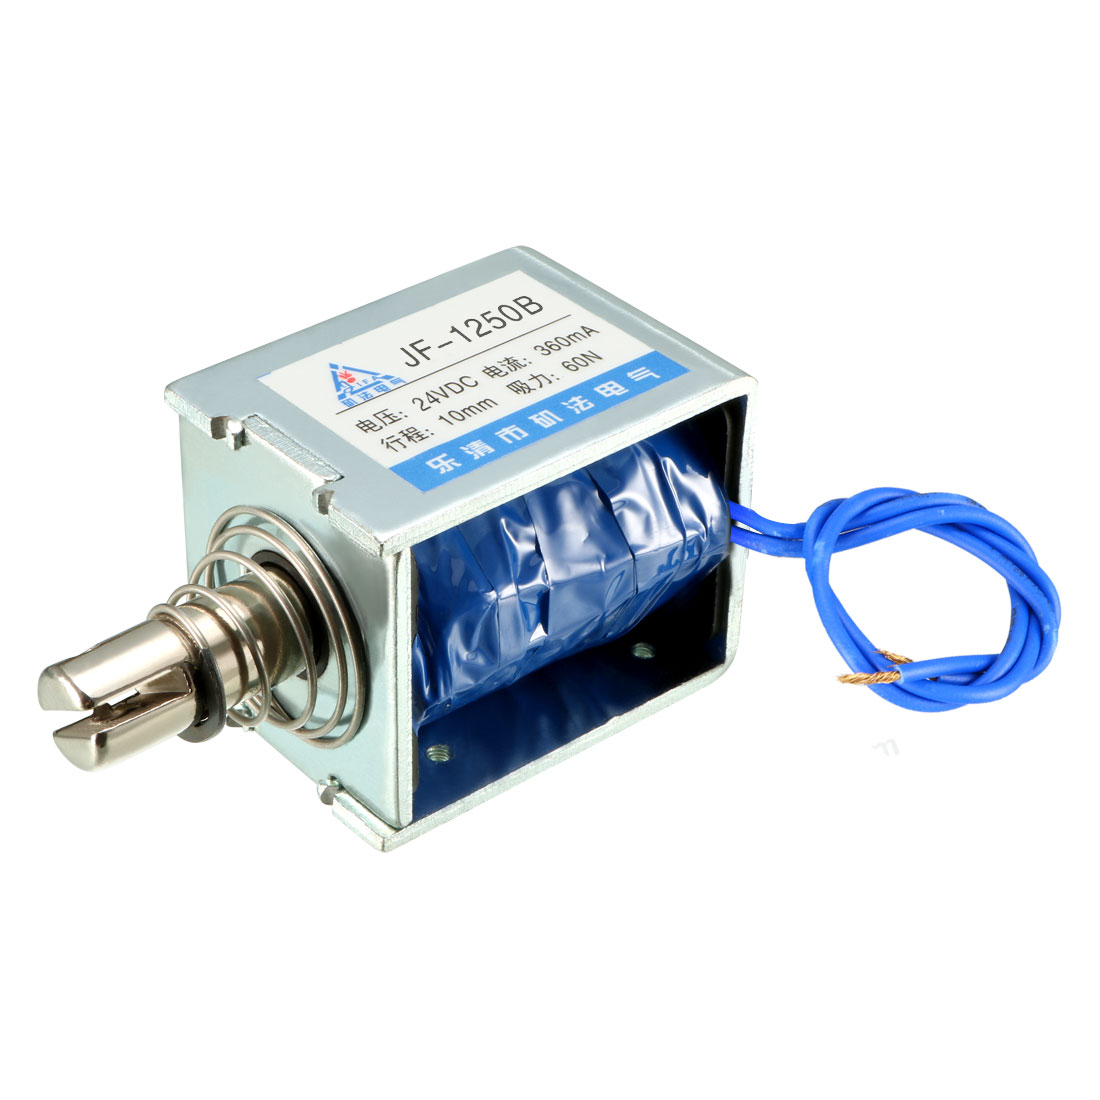 Uxcell JF-1250B DC 24V 360mA 60N 10mm Pull Push Type Open Frame Linear Motion Solenoid Electromagnet